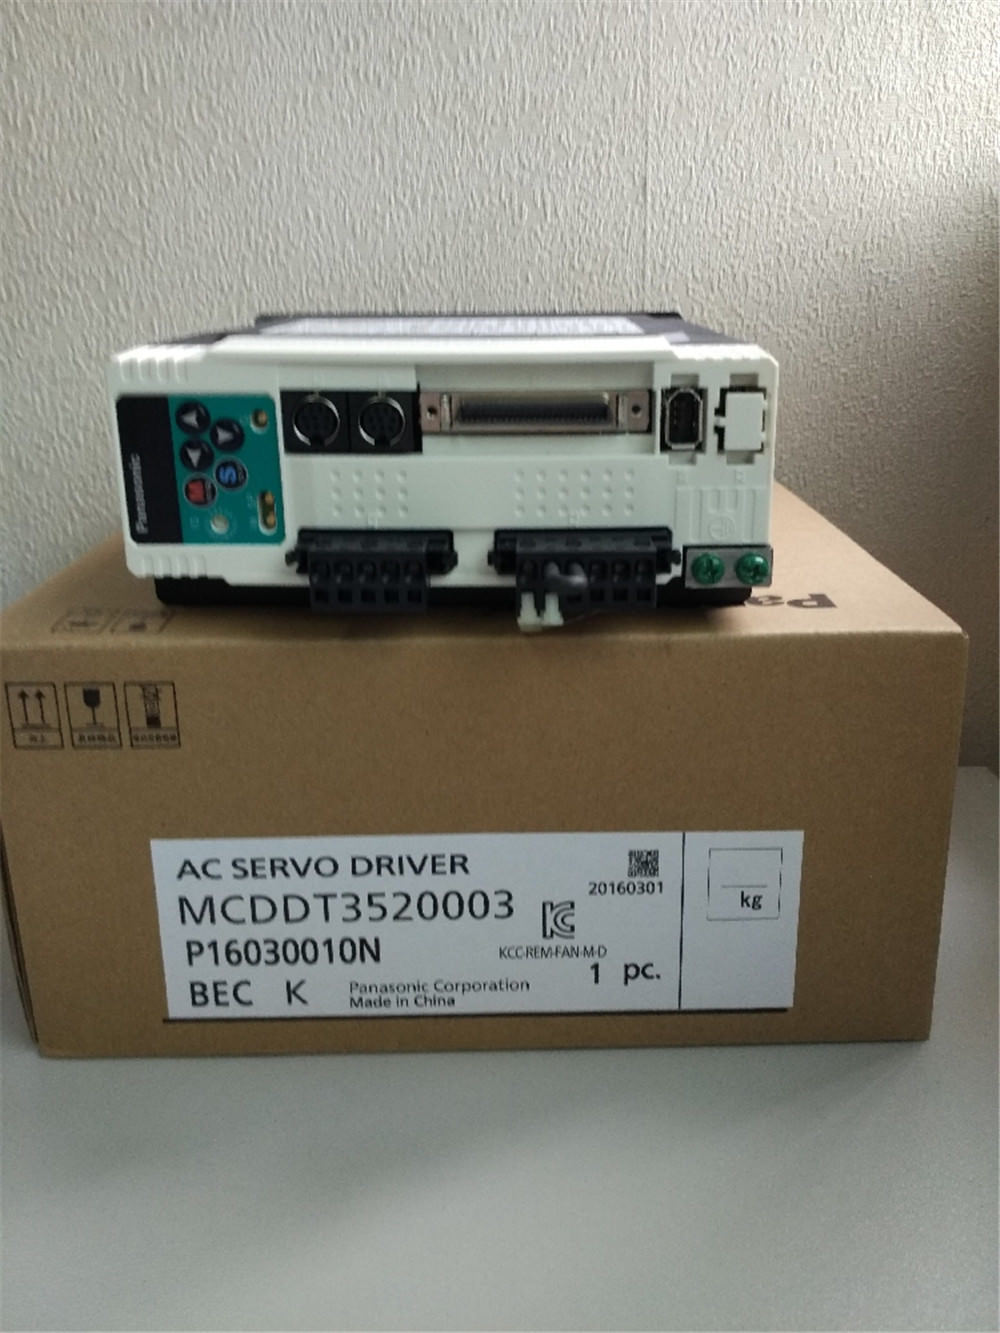 100% NEW PANASONIC AC Servo drive MCDDT3520003 in box